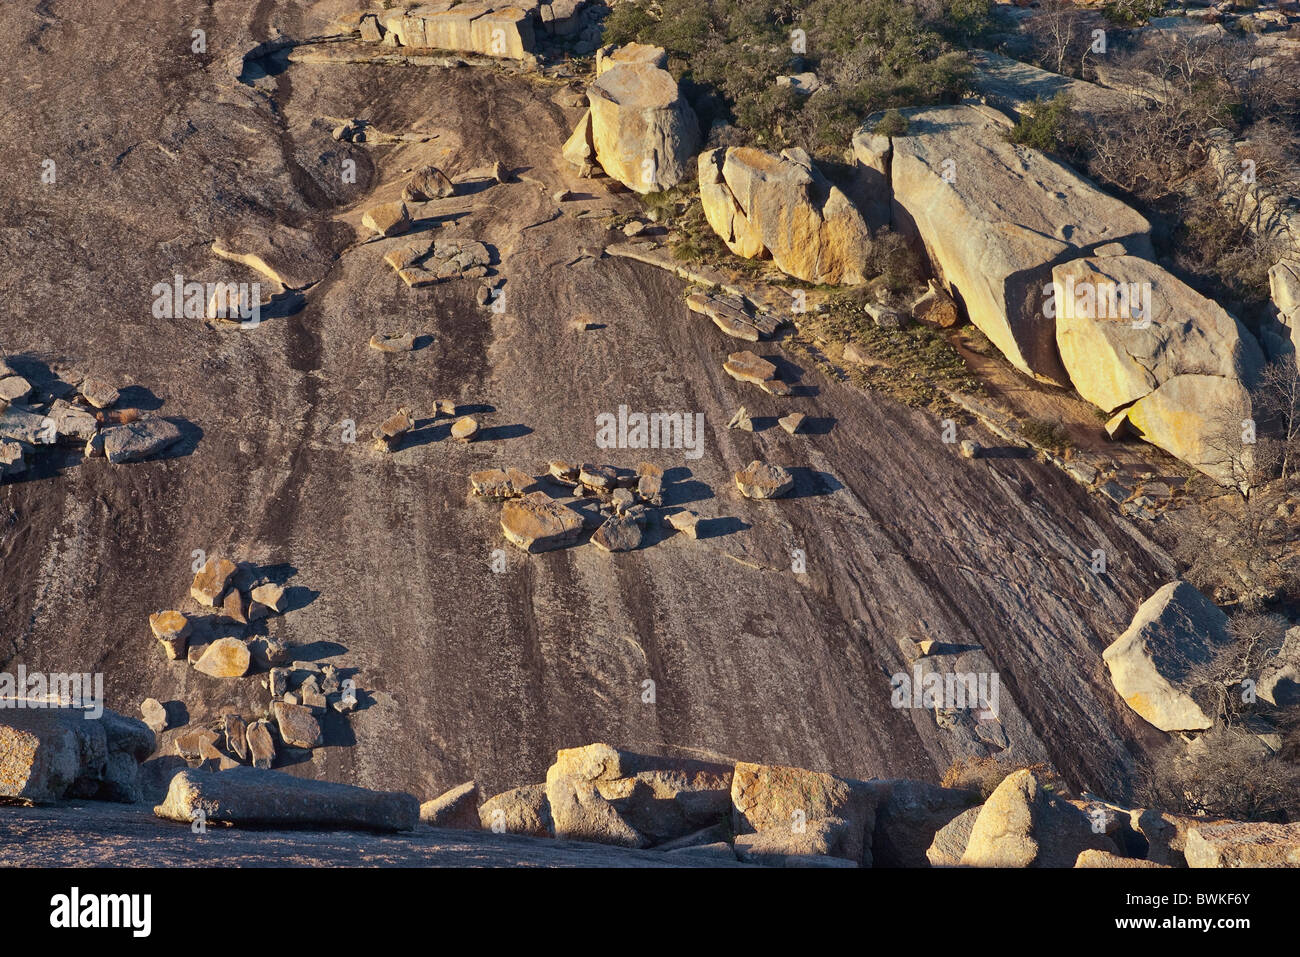 Exfoliated granite layers at Little Rock at Enchanted Rock State Natural Area in Hill Country near Fredericksburg, - Stock Image